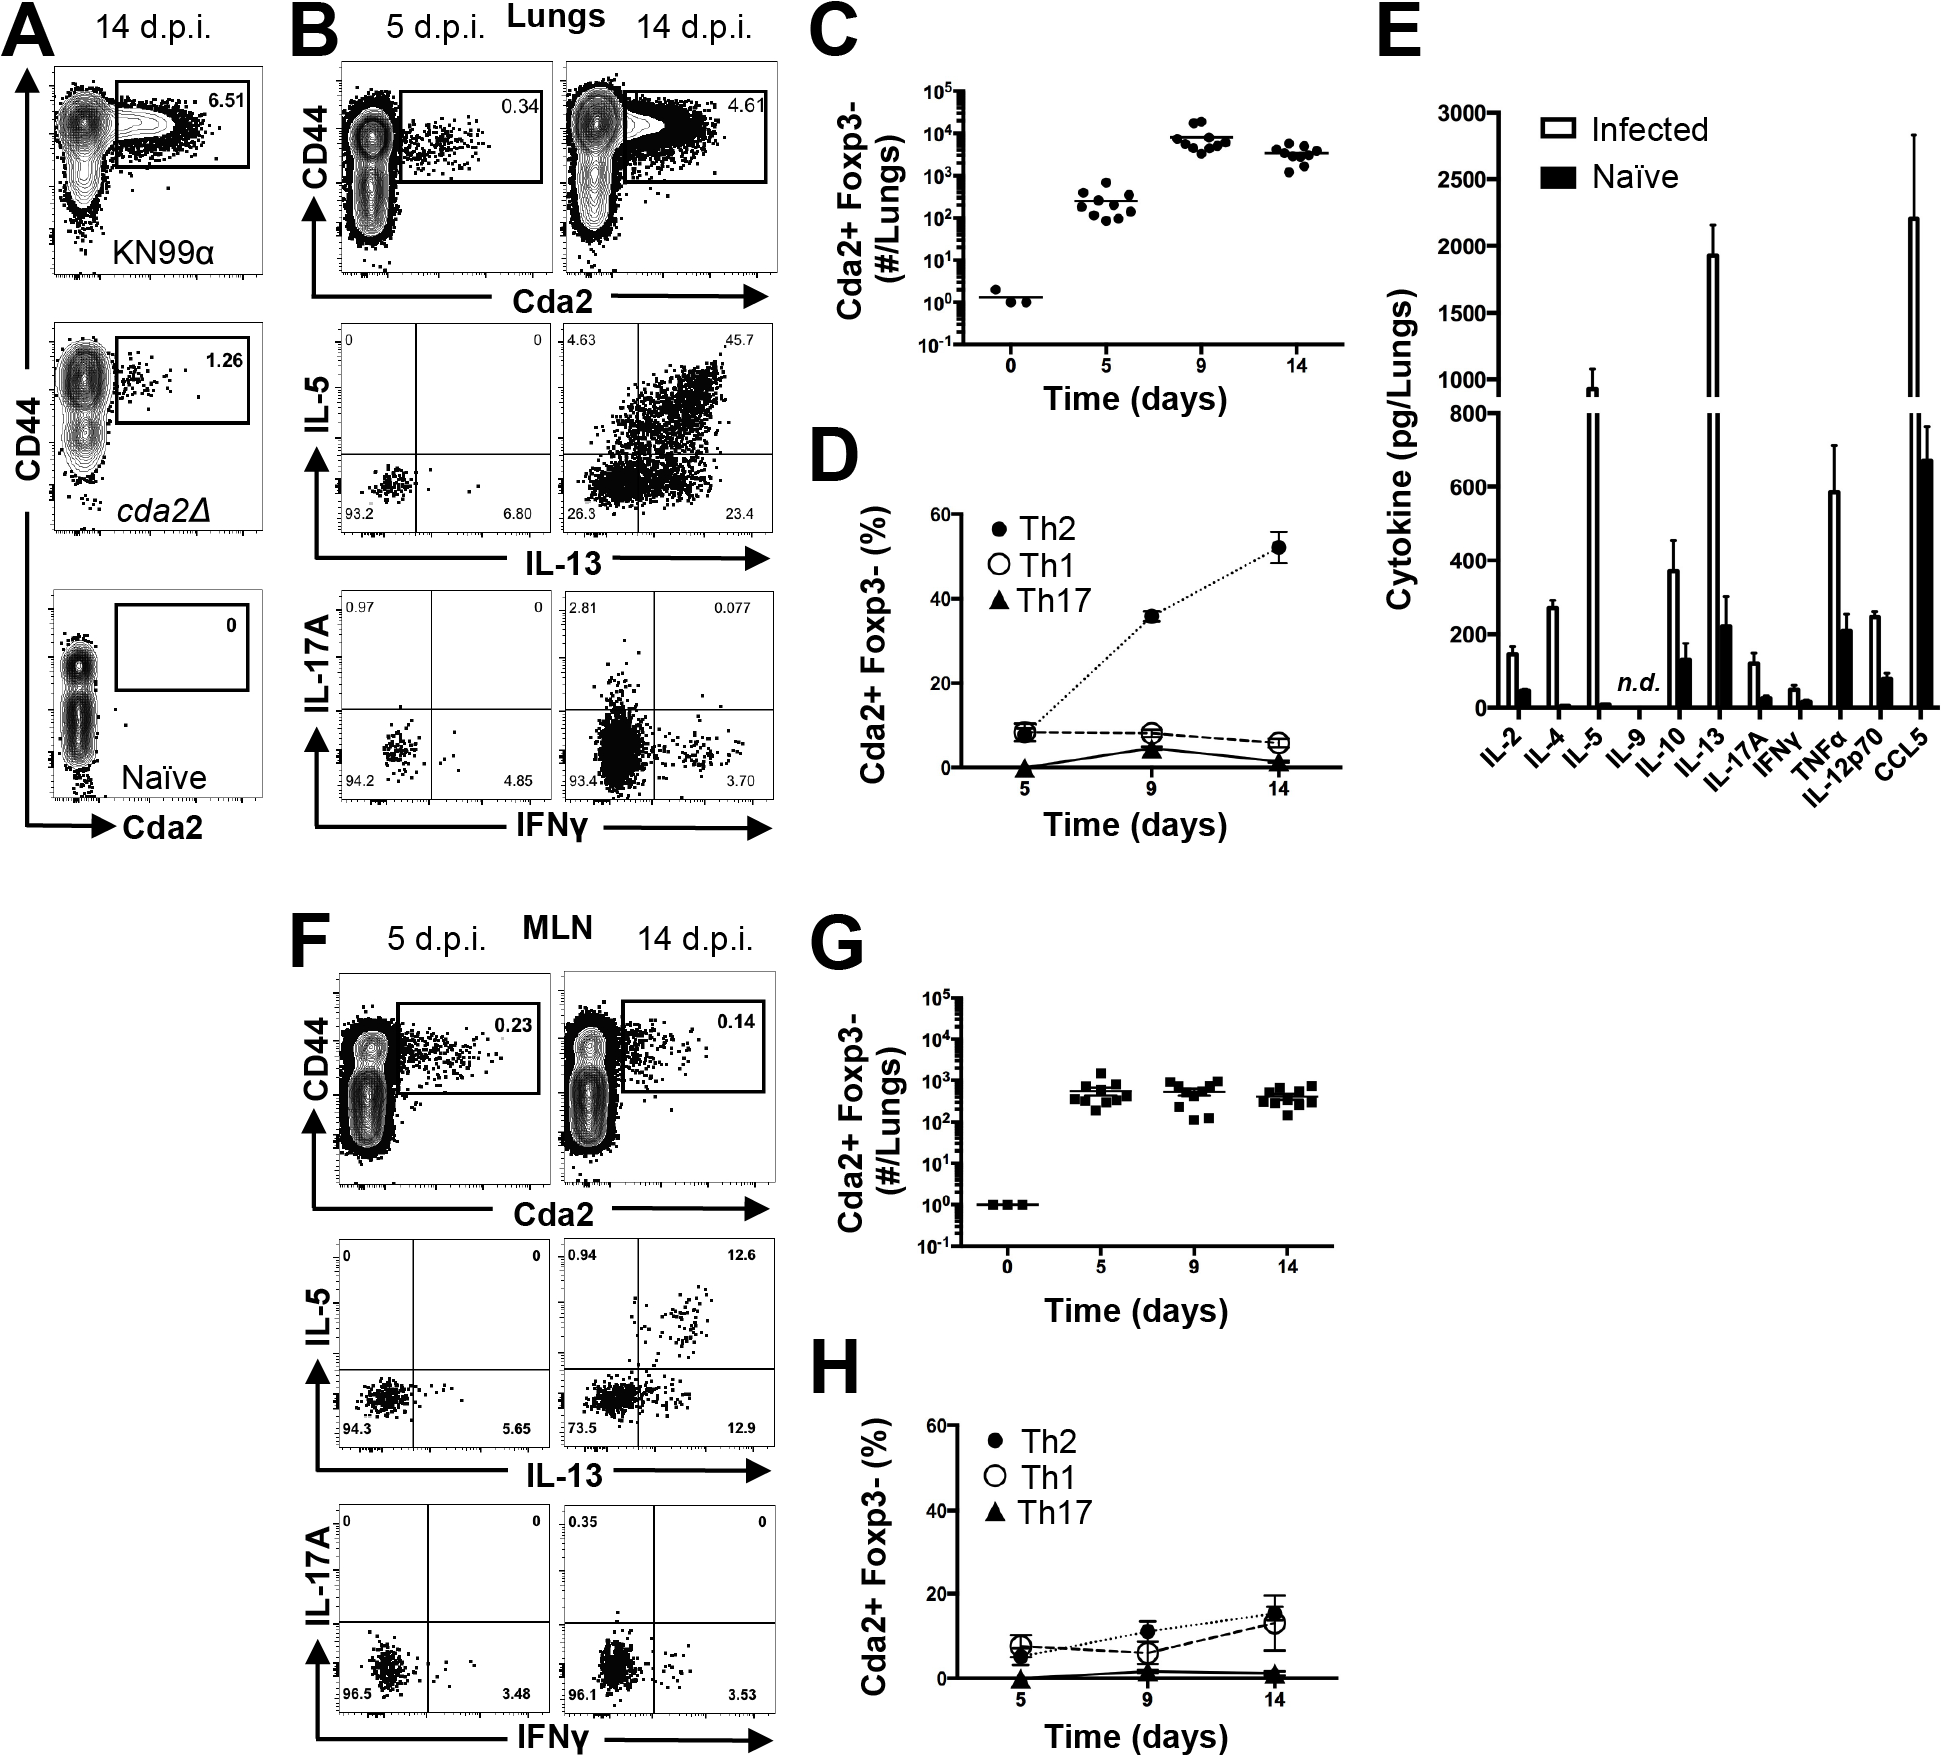 Type-2 Helper T Cells Accumulate in the Lungs of Mice Infected with <i>C. neoformans</i>.